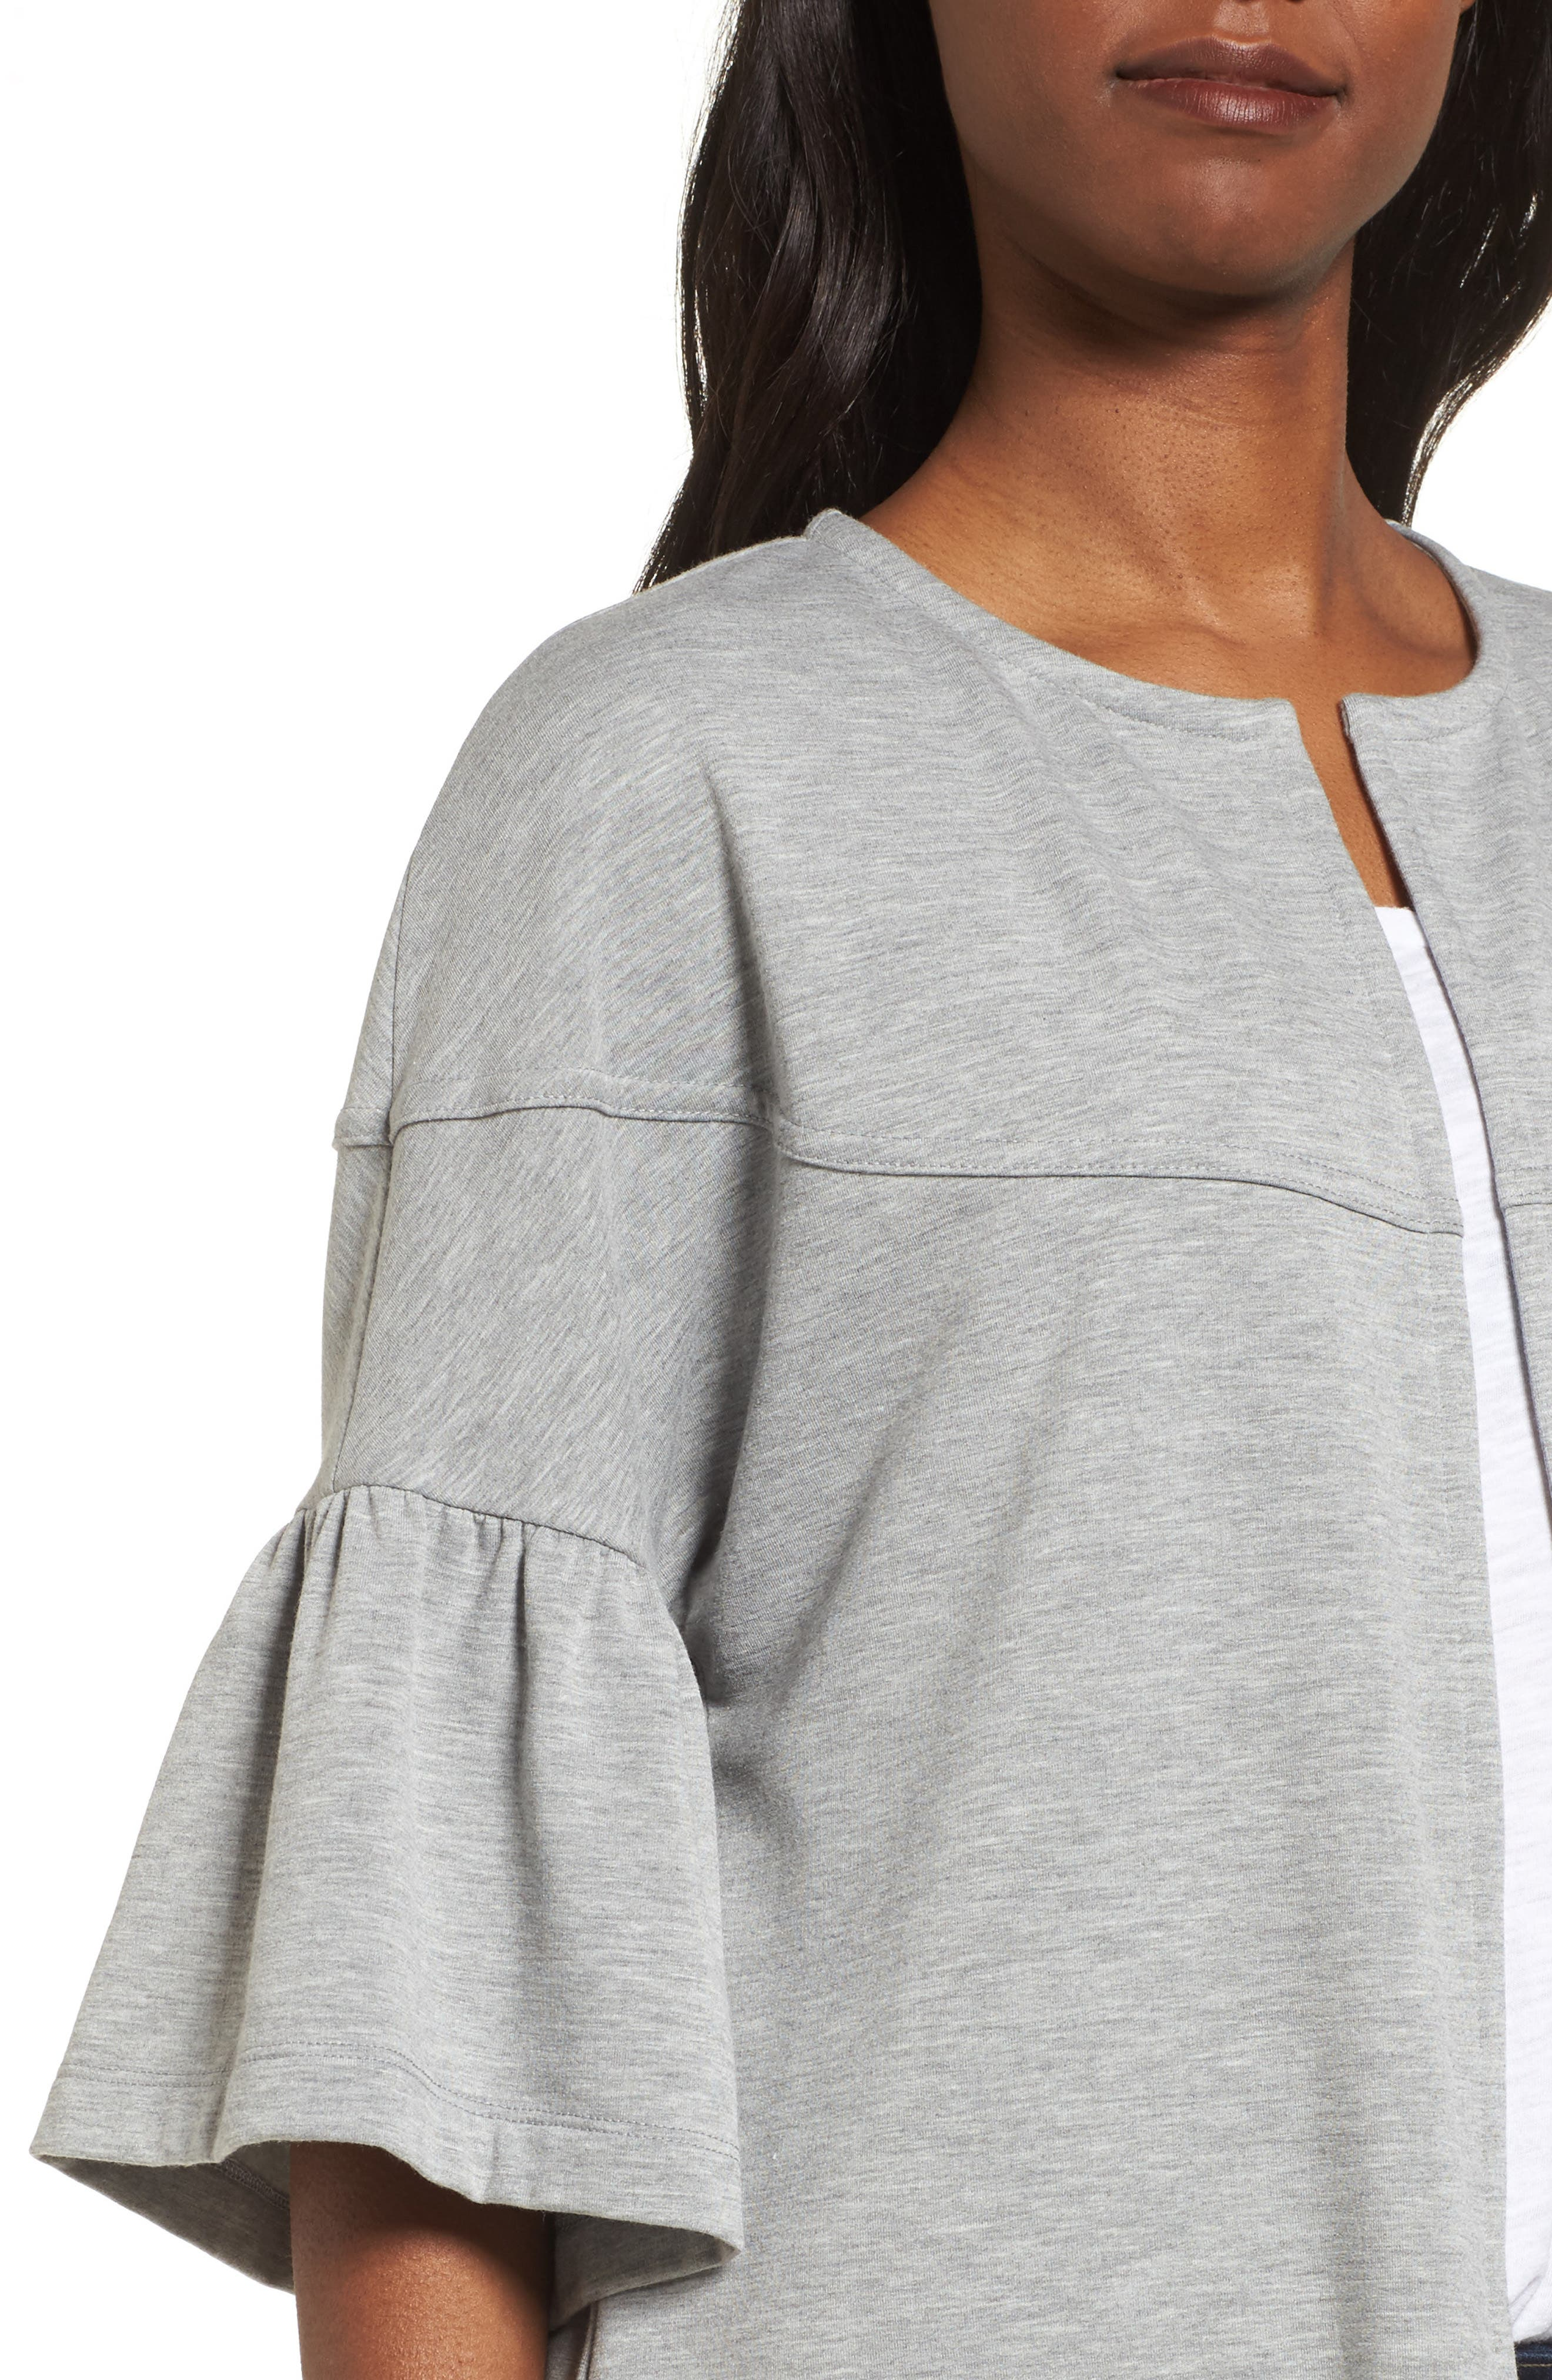 Bell Sleeve French Terry Jacket,                             Alternate thumbnail 4, color,                             Heather